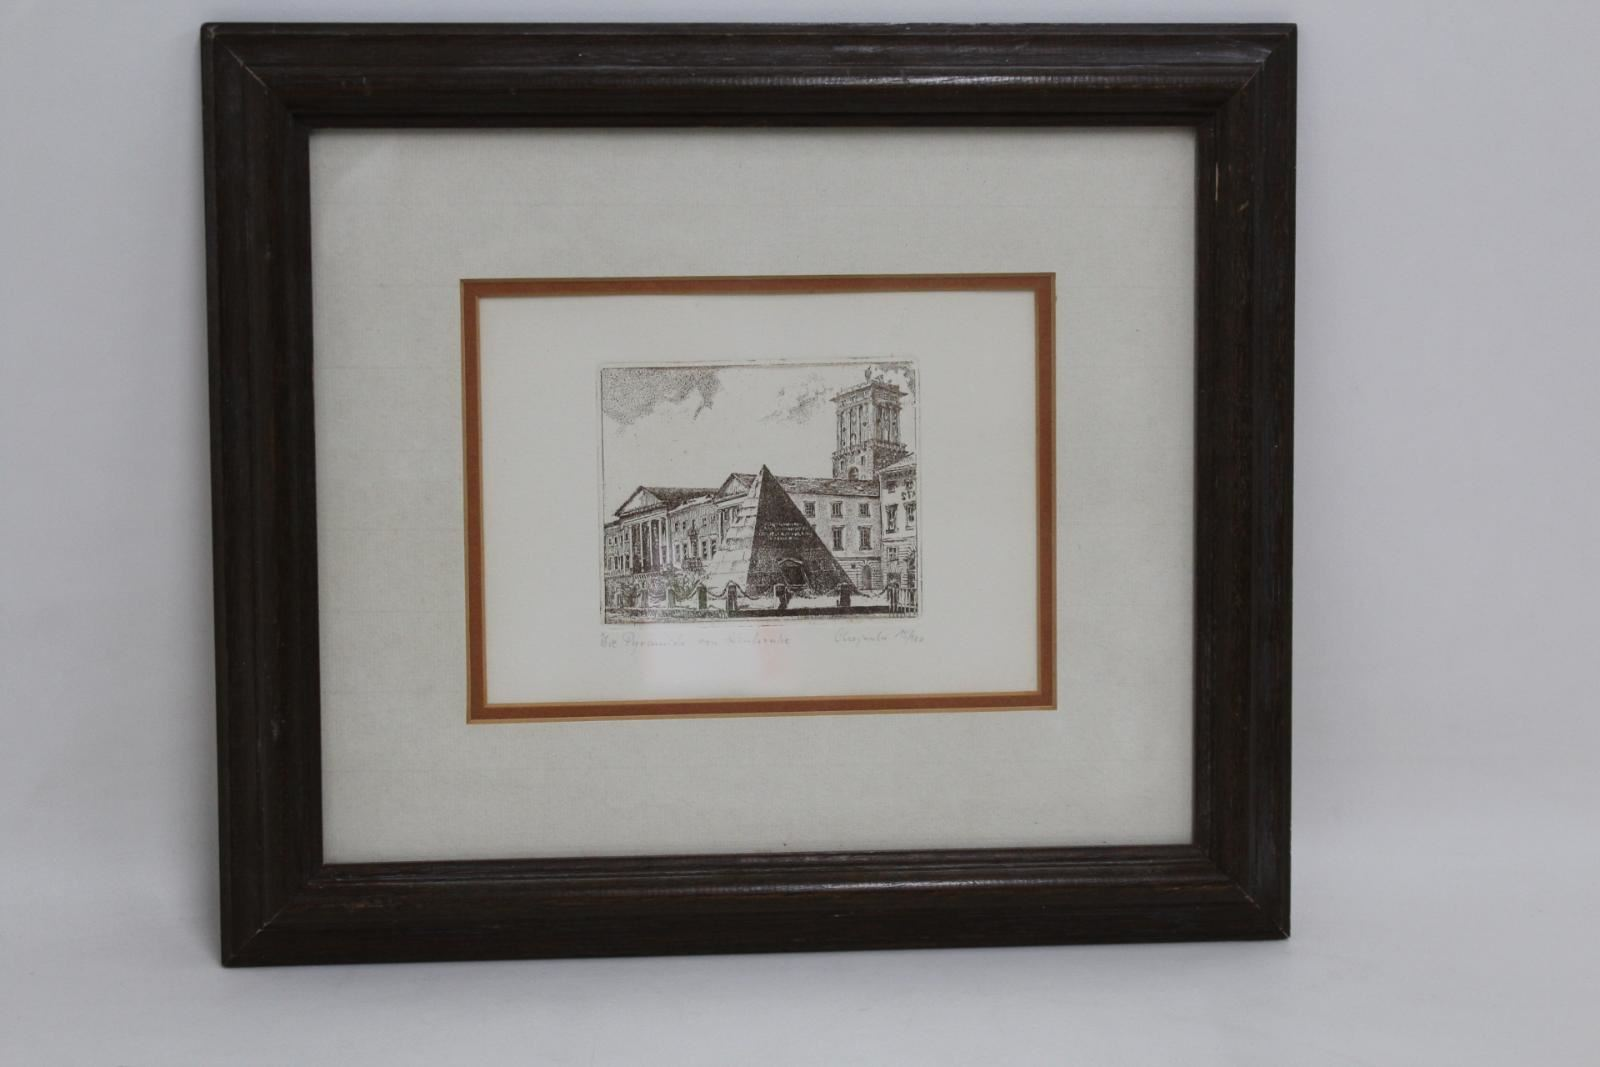 EDMOND-CHOJNACKI-Limited-Edition-Etching-Die-Pyramid-von-Karlsruhe-1984-Art